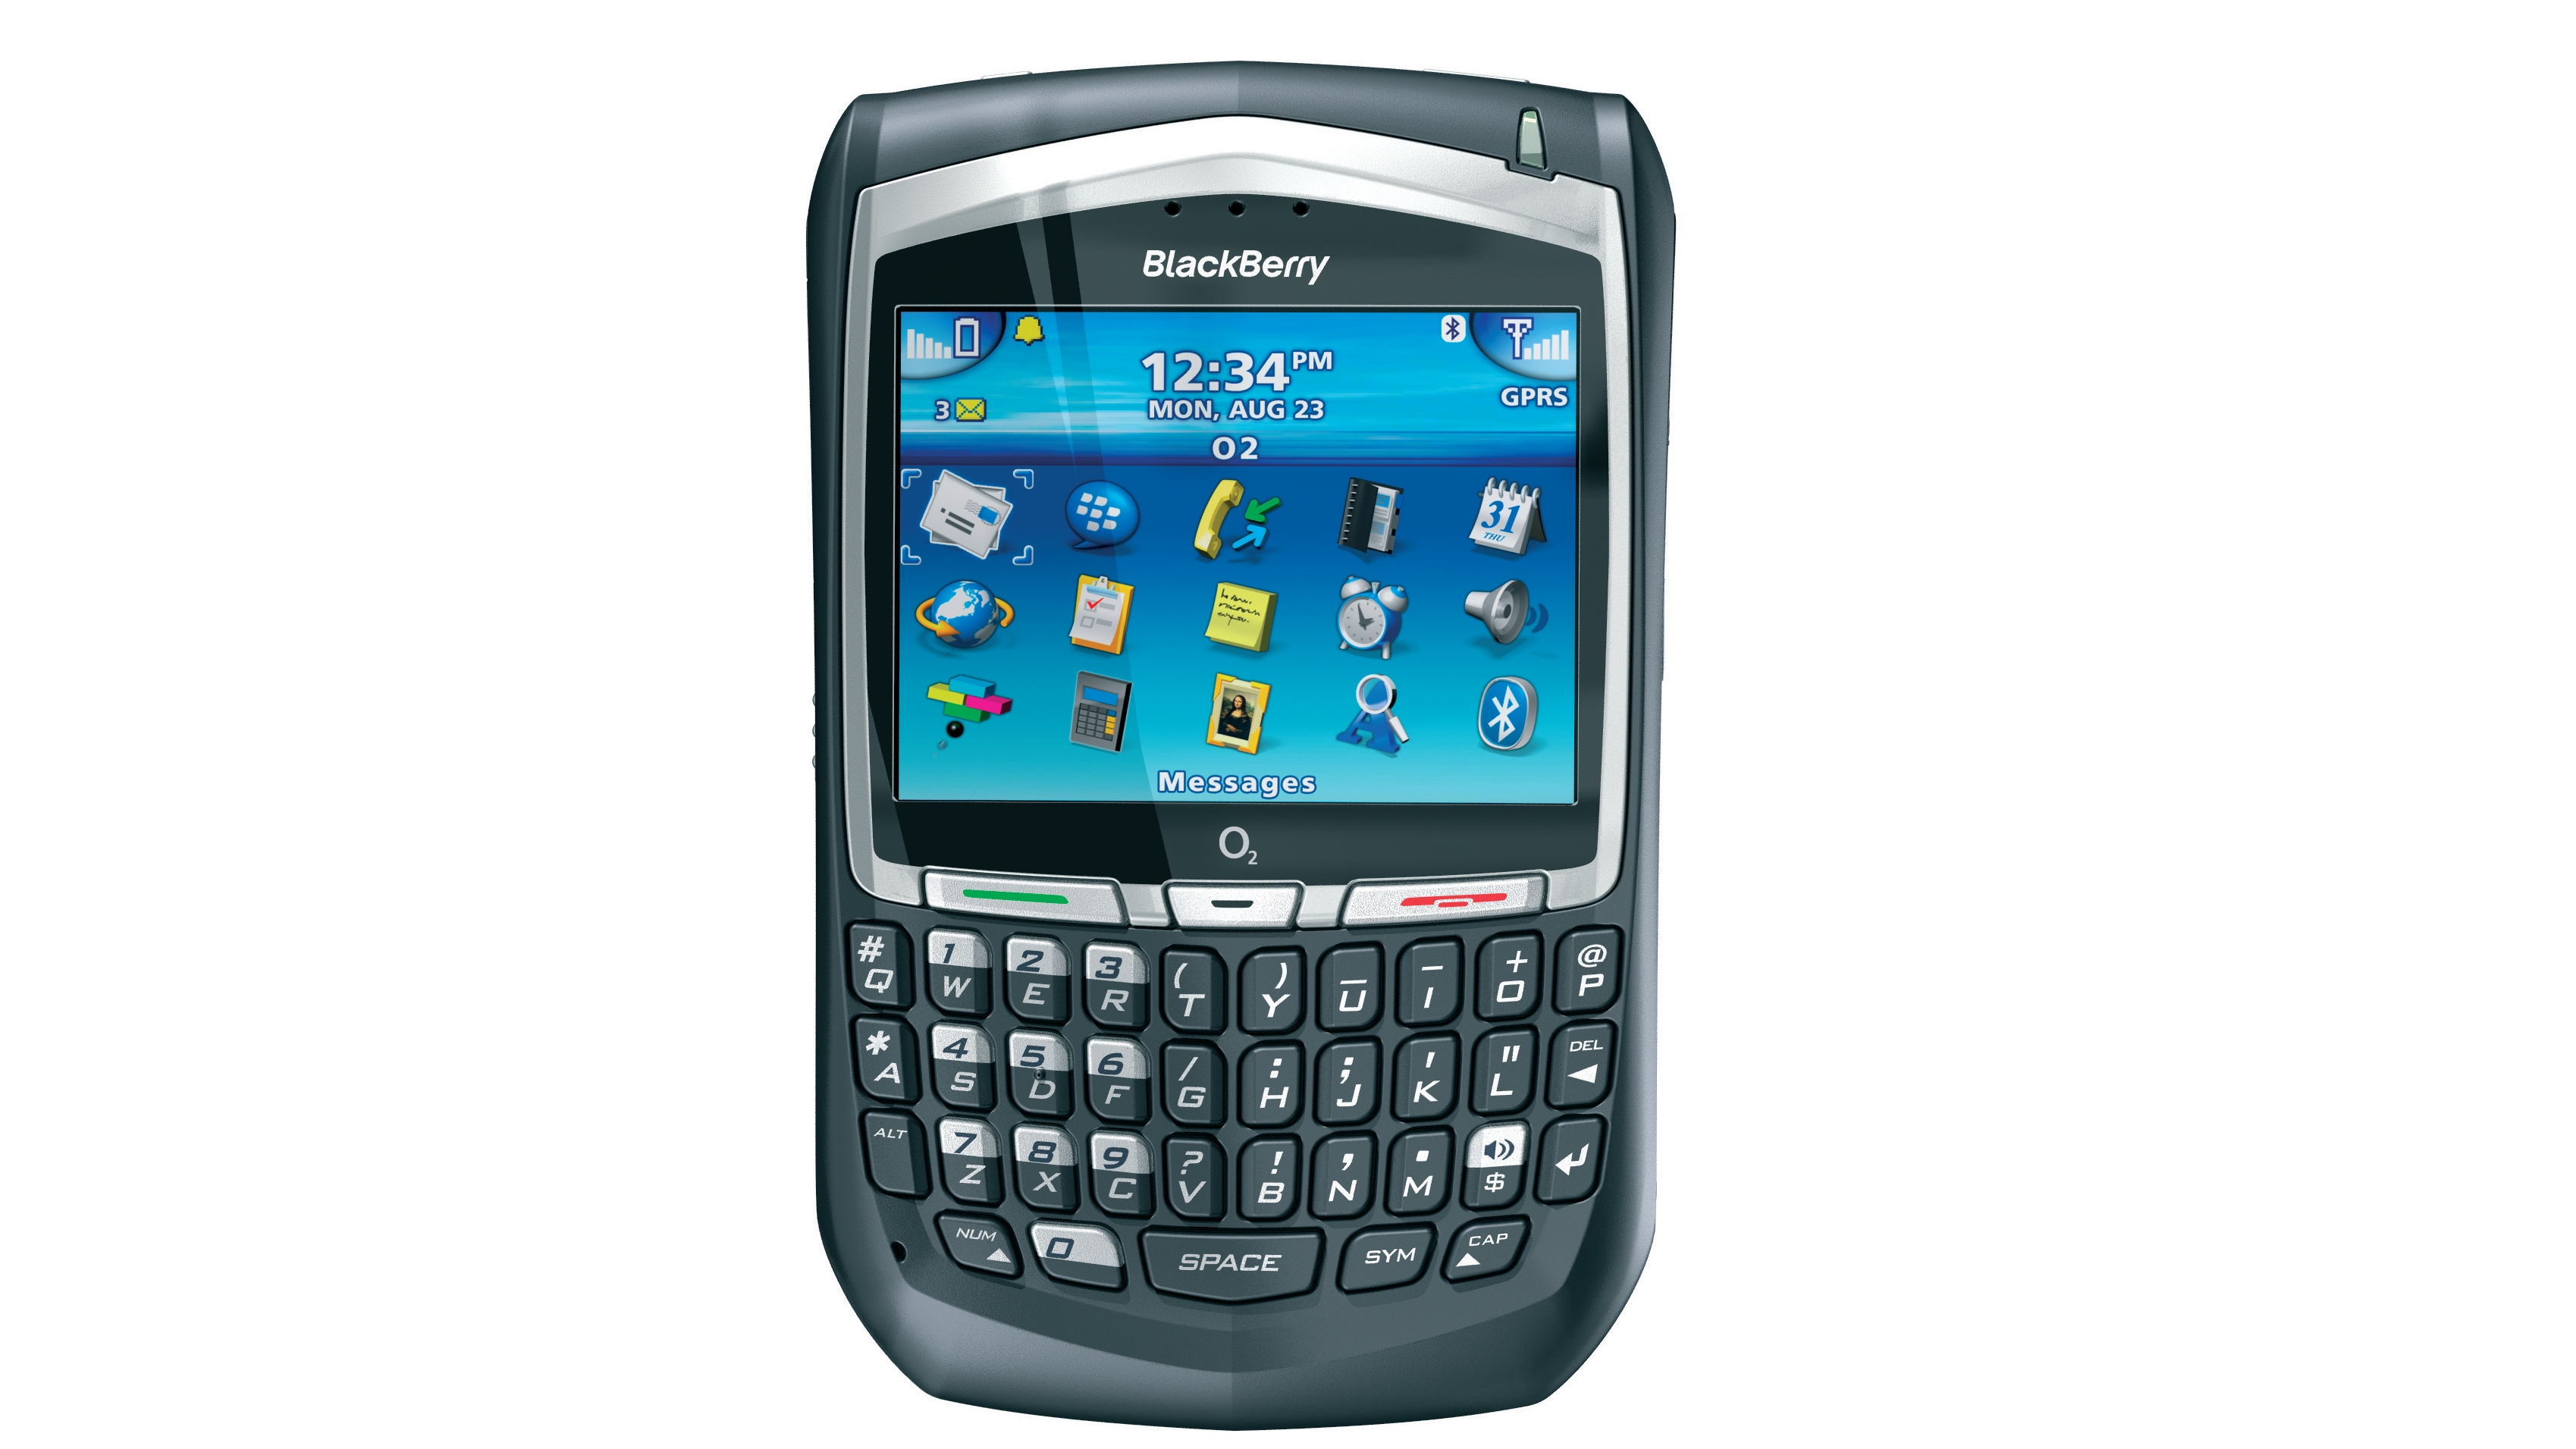 blackberry 8700g user manual various owner manual guide u2022 rh justk co BlackBerry Torch Guide BlackBerry Torch Guide